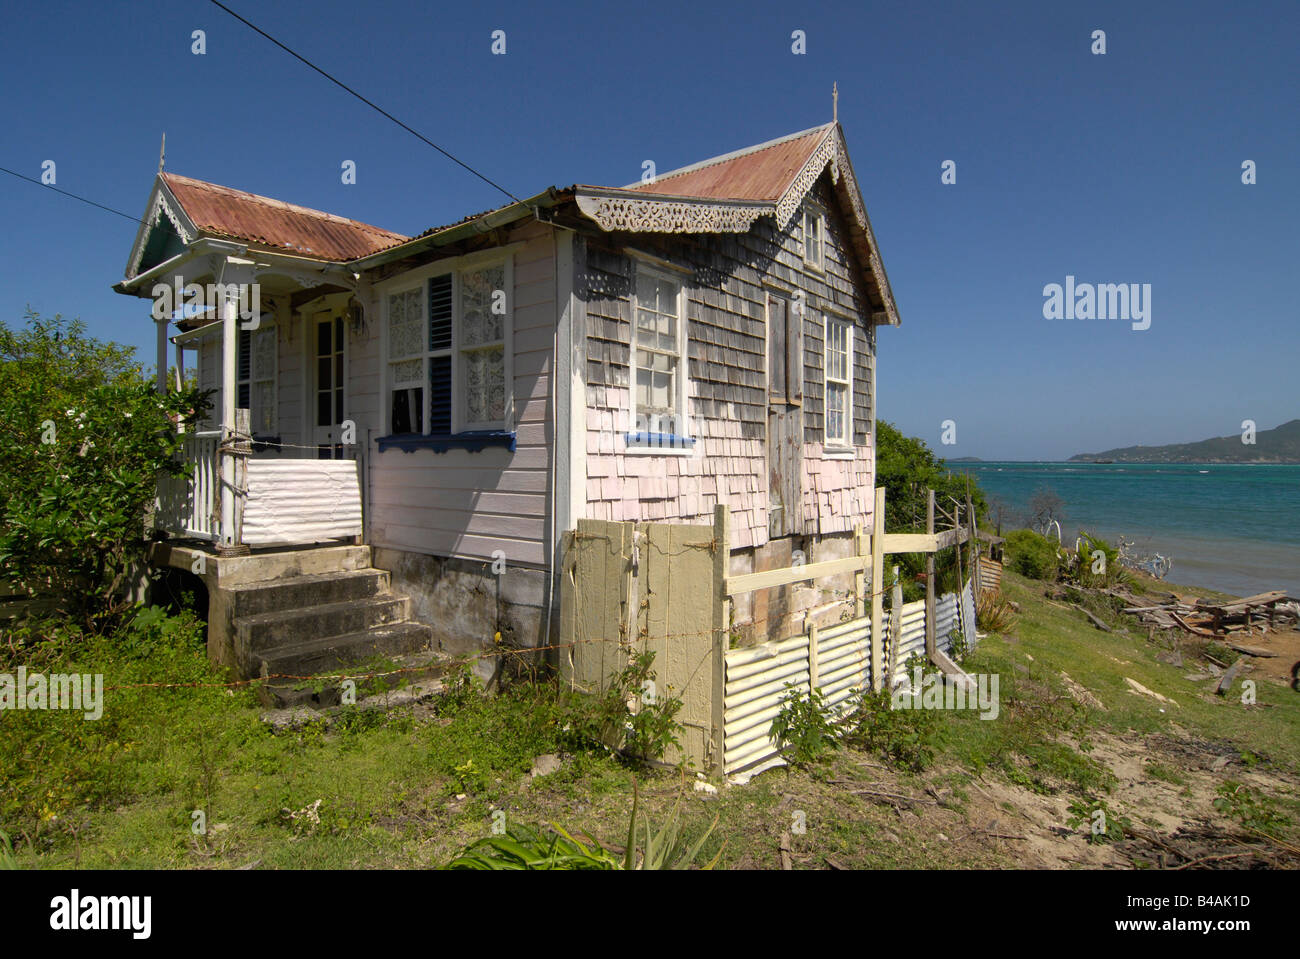 architecture, buildings, Grenada, traditional house on Carriacou, exterior view, Additional-Rights-Clearance-Info - Stock Image